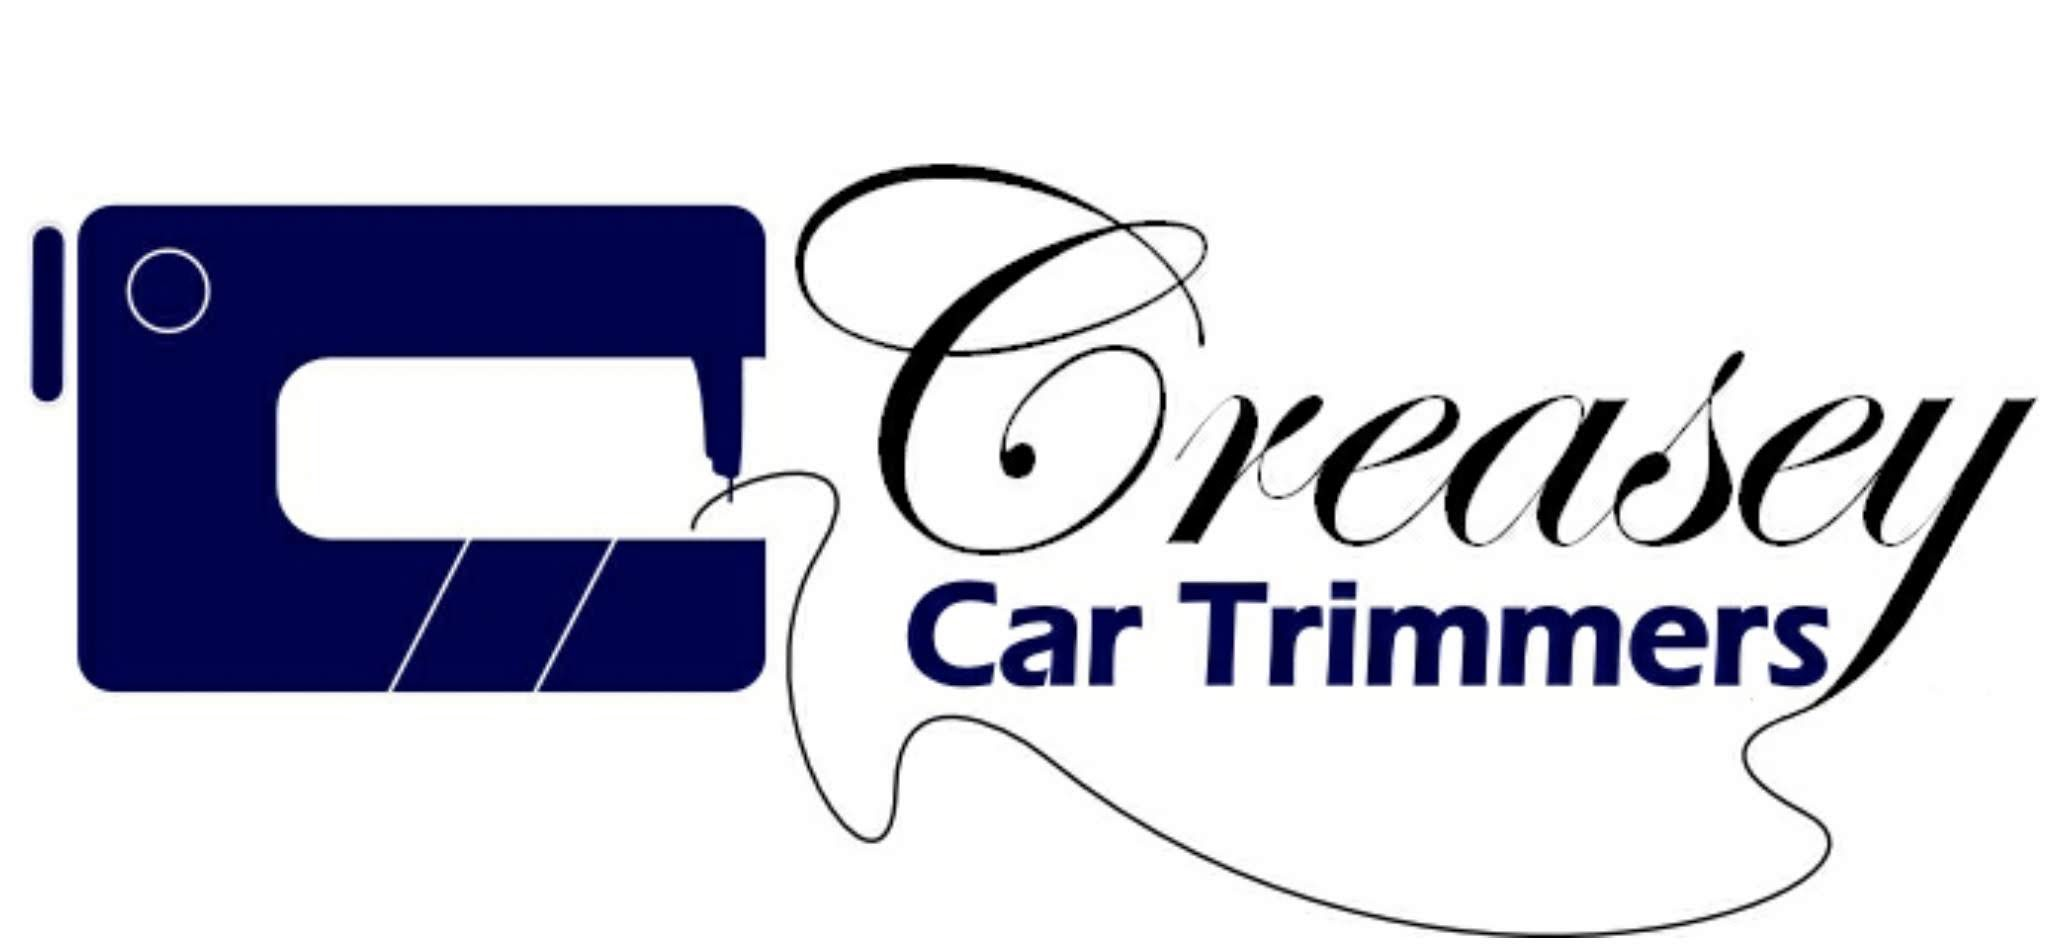 Creasey Car Trimmers